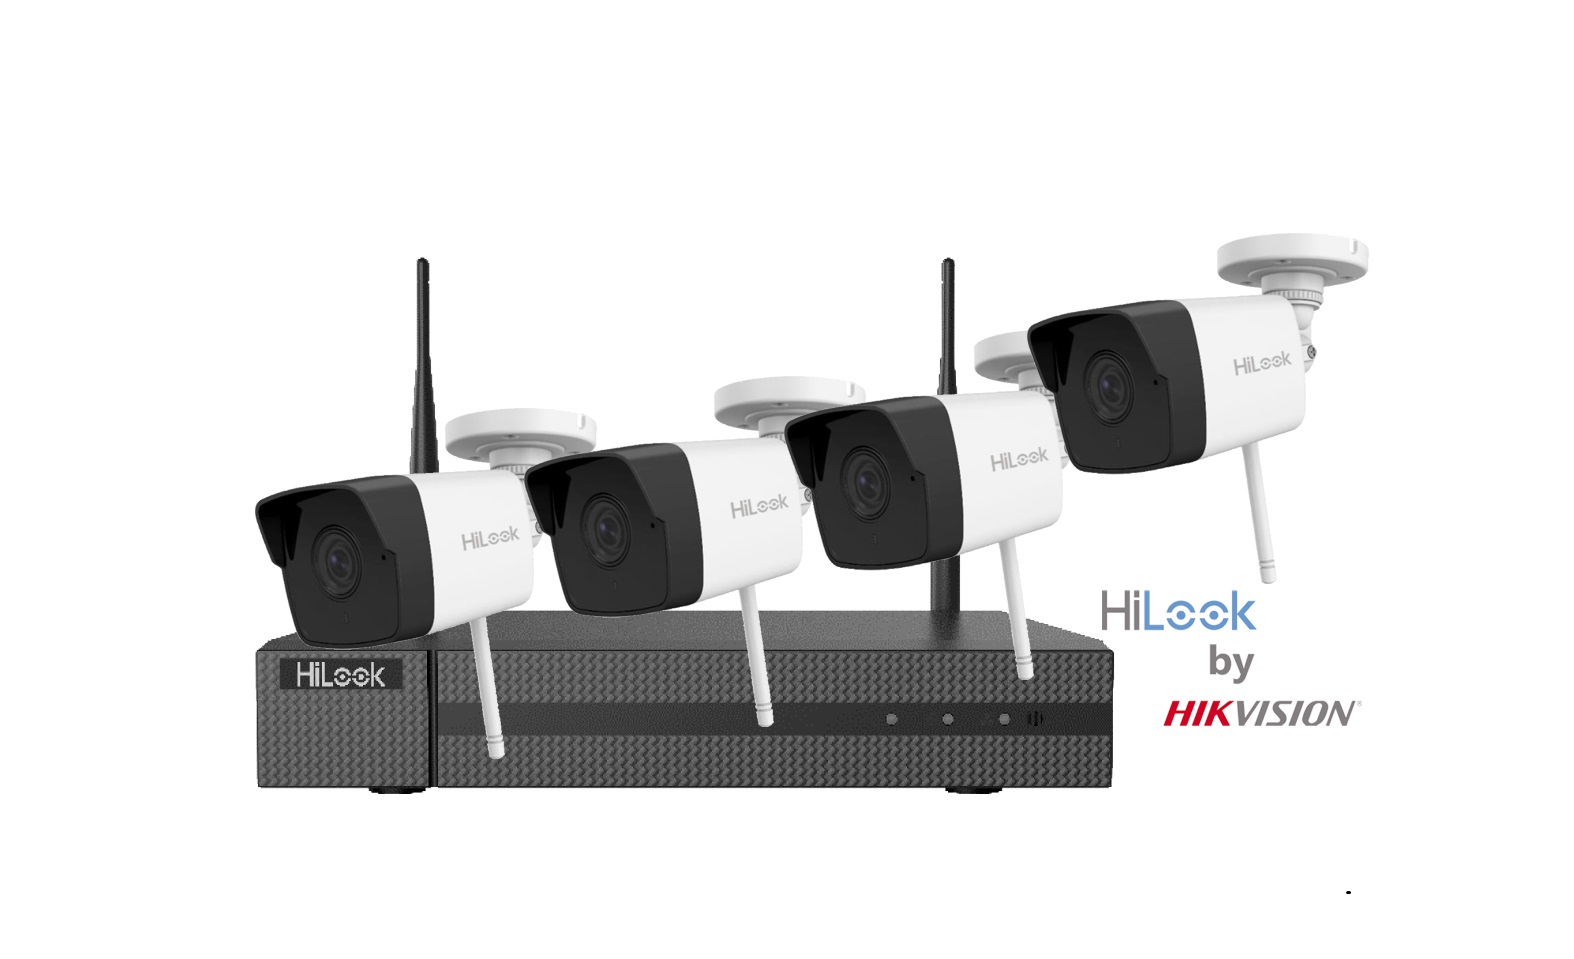 HiLook By Hikvision IK-4142B-MH/W Wireless 4 Channel NVR with 2MP Wireless Cameras CCTV KIT with 1TB HDD